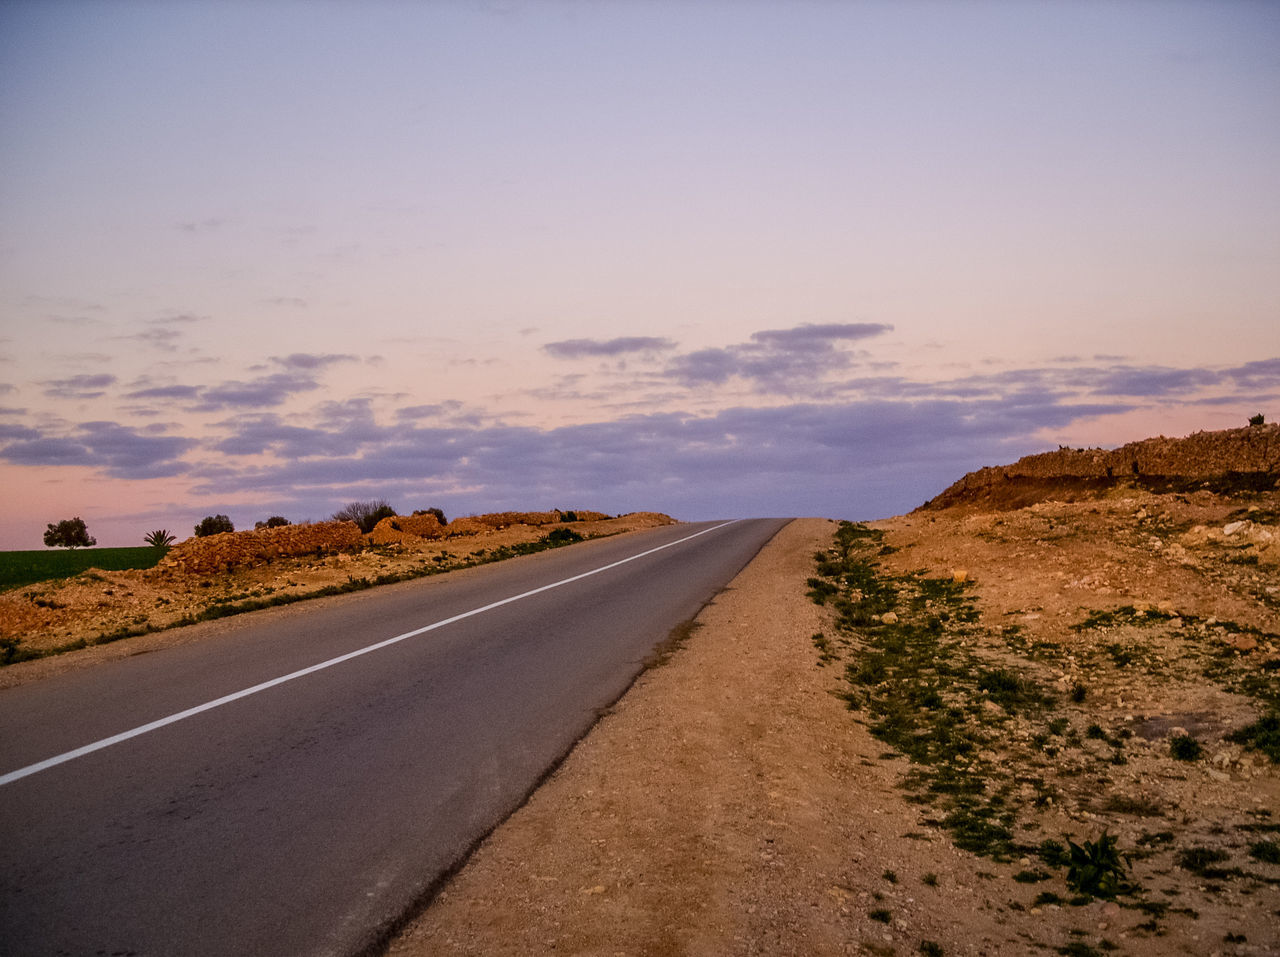 Arid Climate Beauty In Nature Day Desert Landscape Nature No People Outdoors Road Road Roadtrip Scenics Sky Sunset Sunset_collection The Way Forward Tranquil Scene Travel Travel Destinations Winding Road